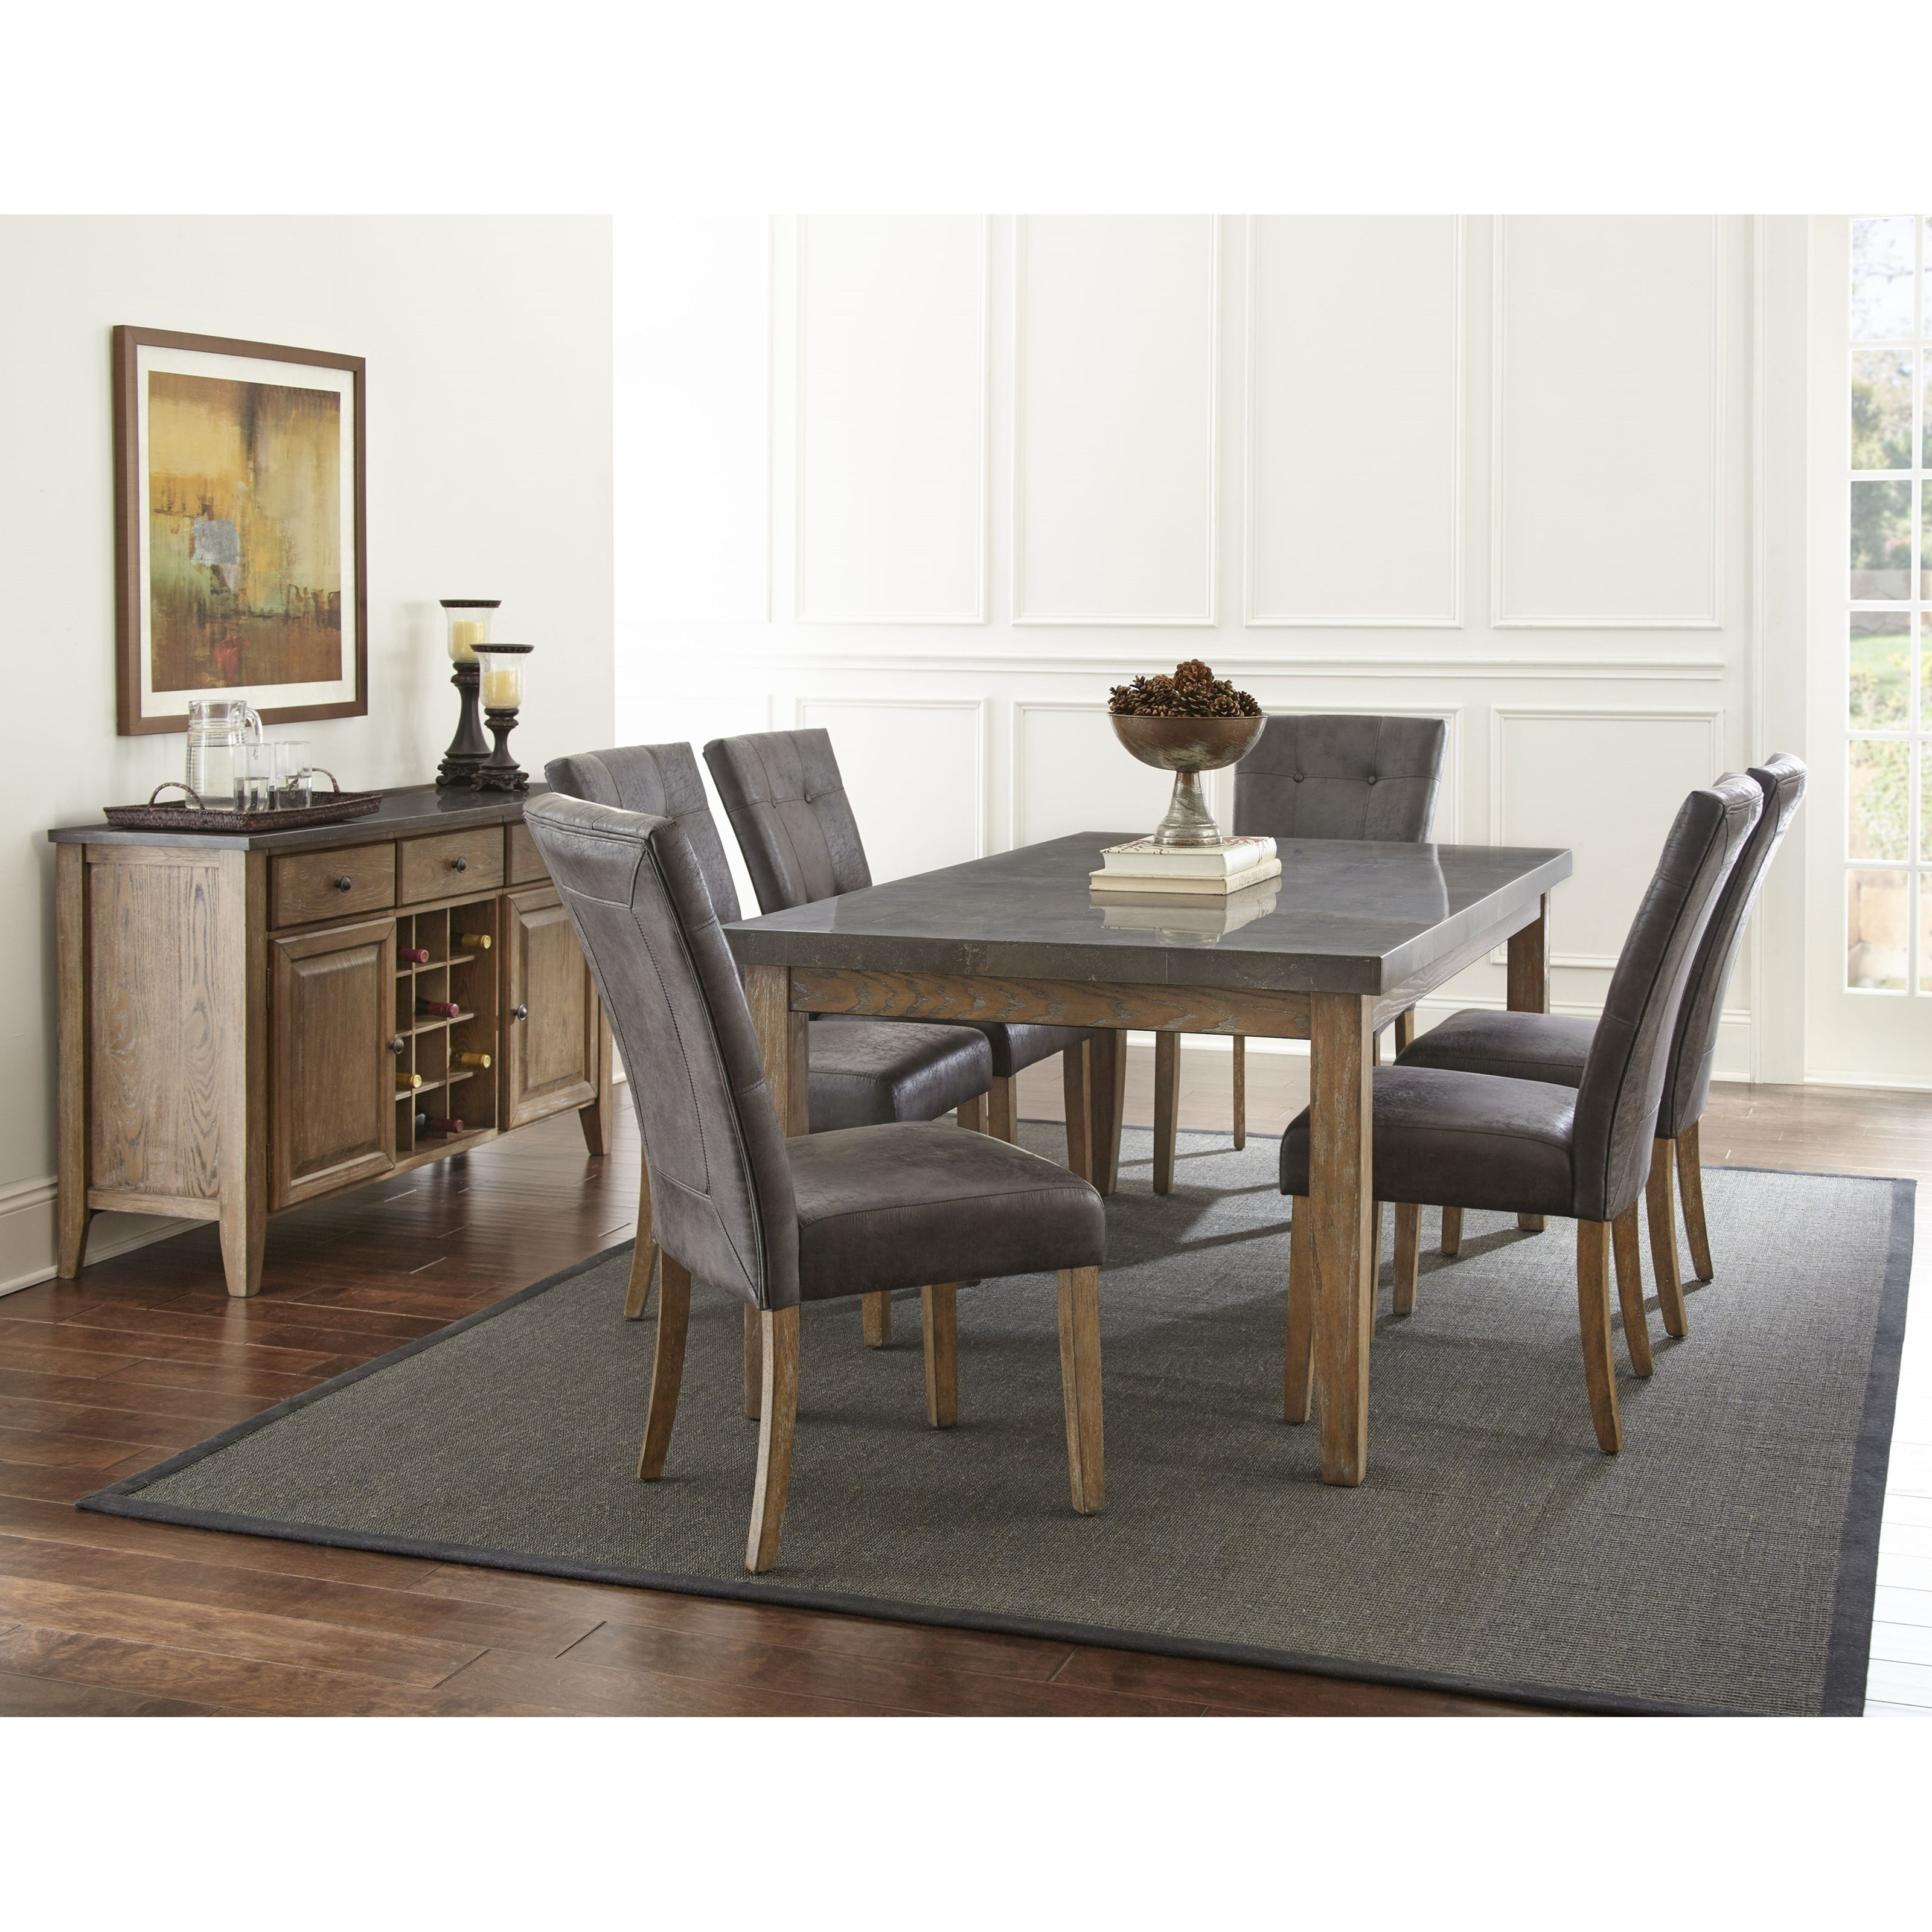 Steve Silver Harmony 7 Piece Oval Dining Room Set In: Steve Silver Debby 7 Piece Transitional Table And Chair